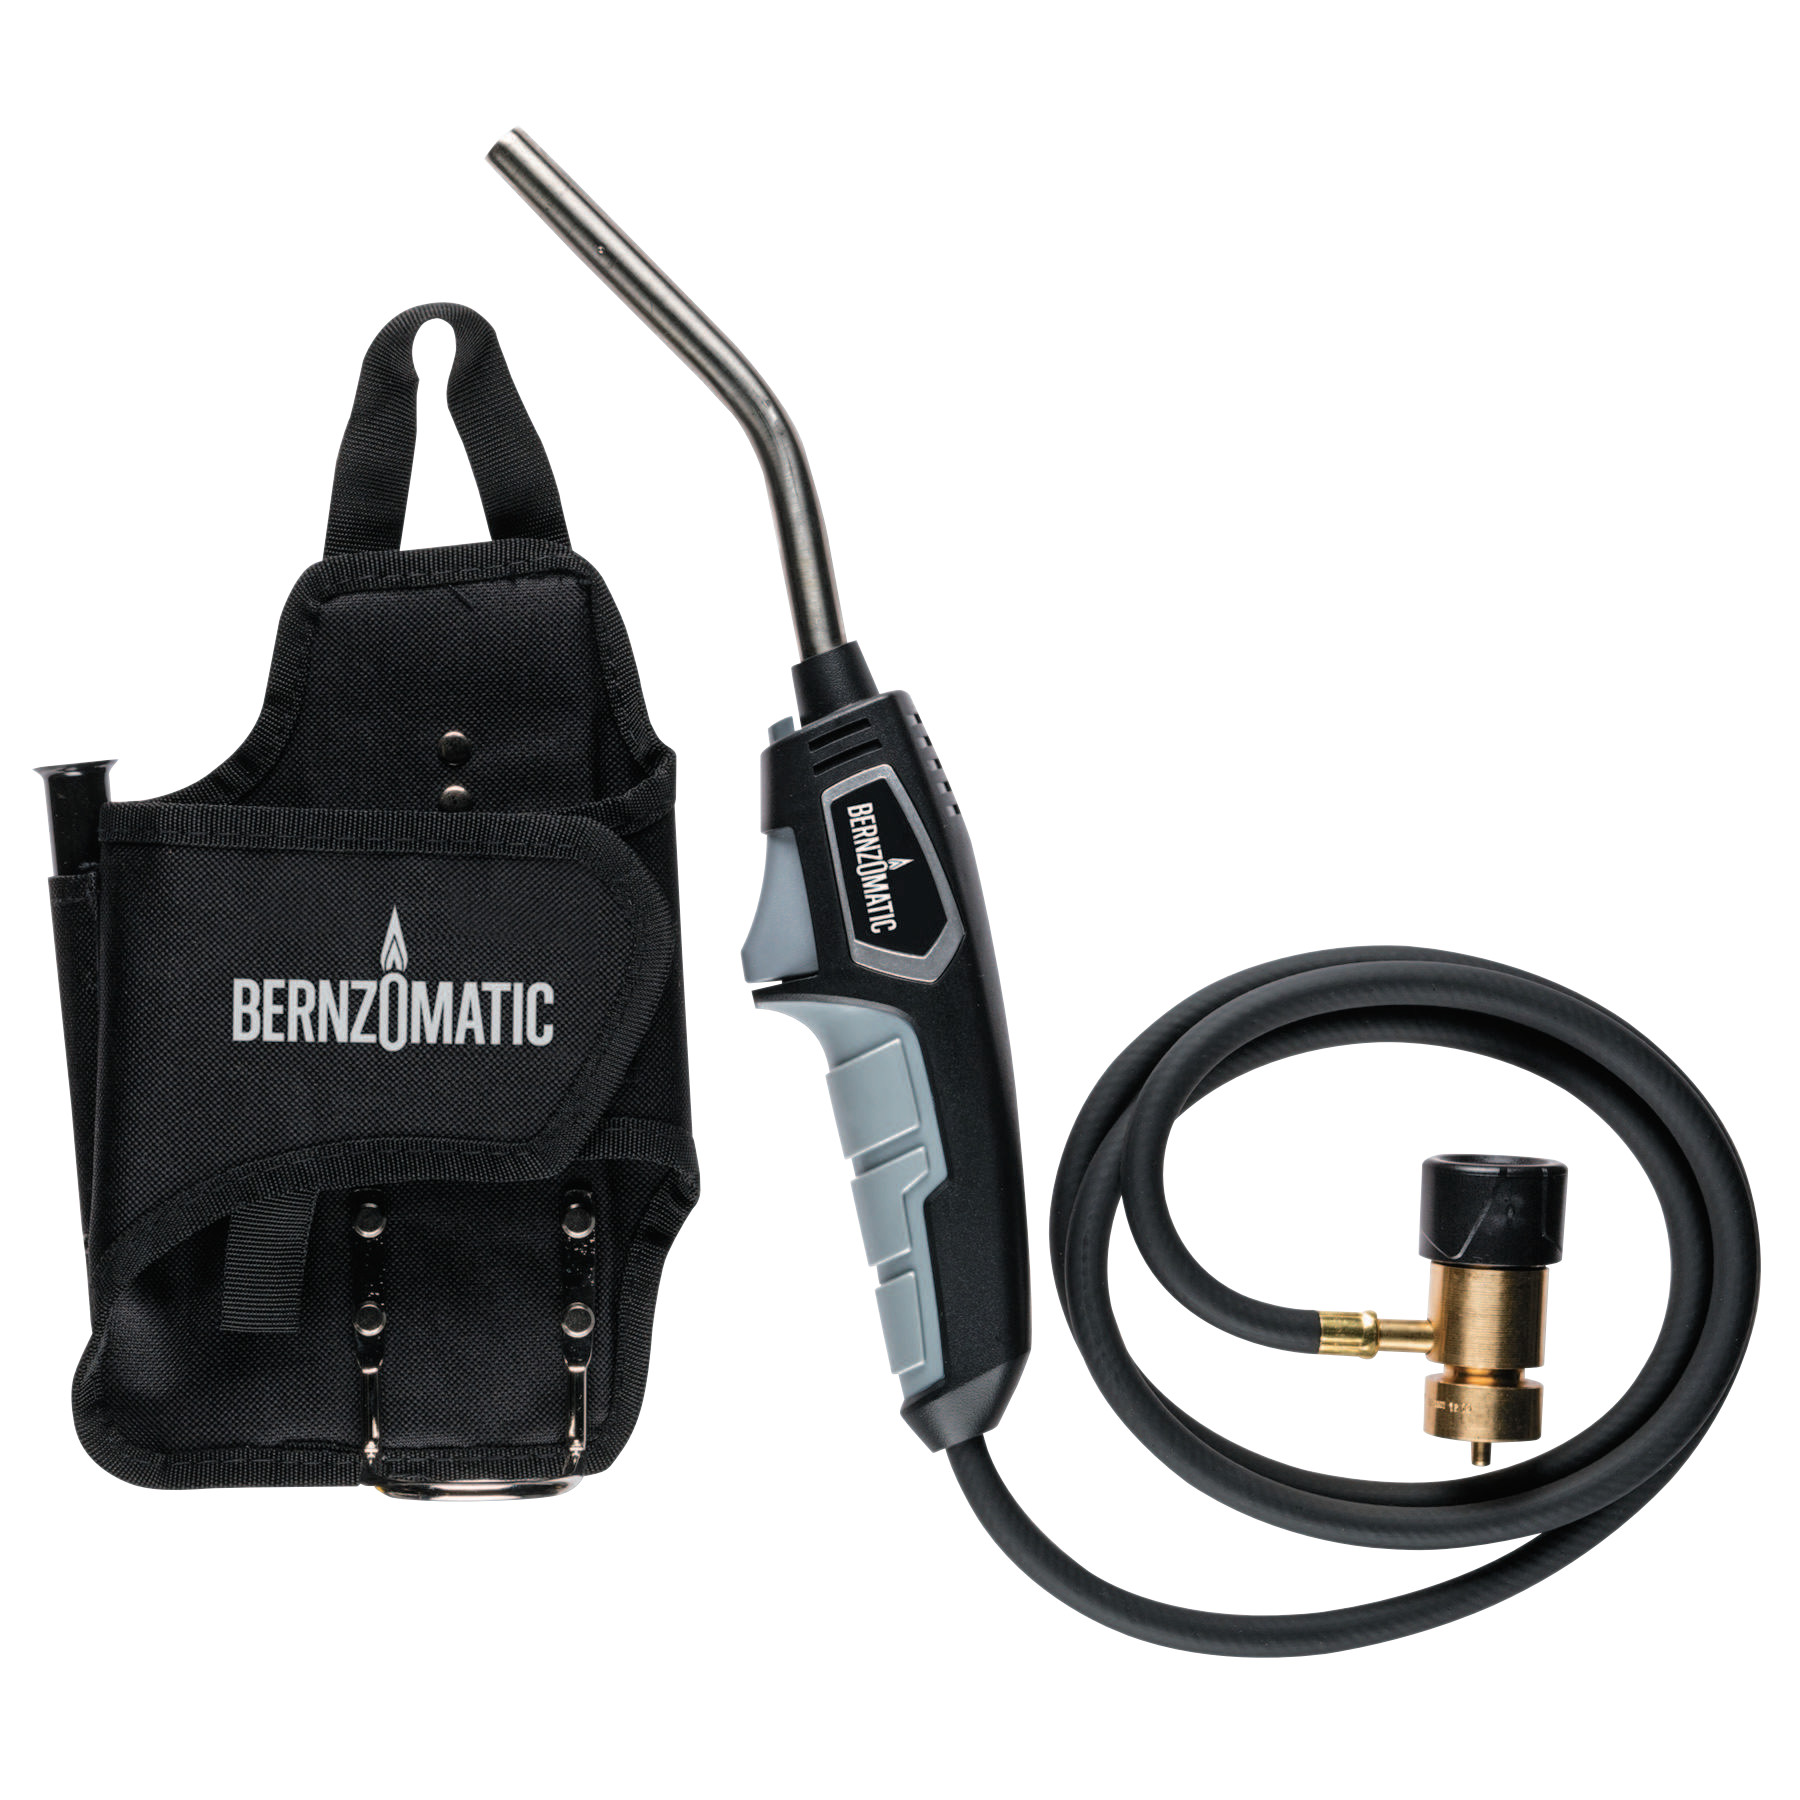 BernzOmatic Trigger-Start Hose Torches, Fat Boy Fuel Holster, Butane